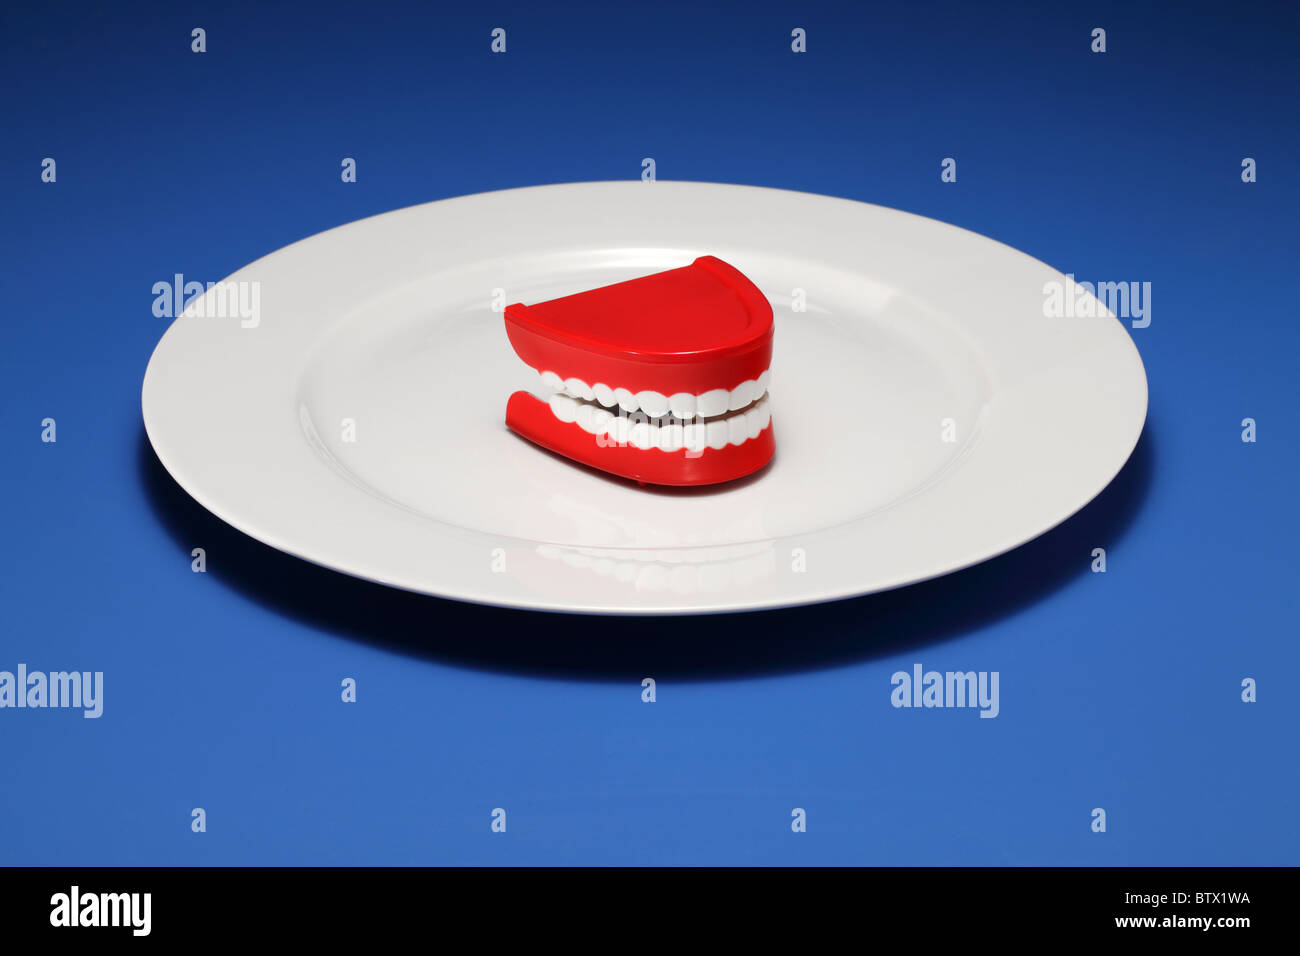 One set of plastic gums and teeth on a white dinner plate - Stock Image